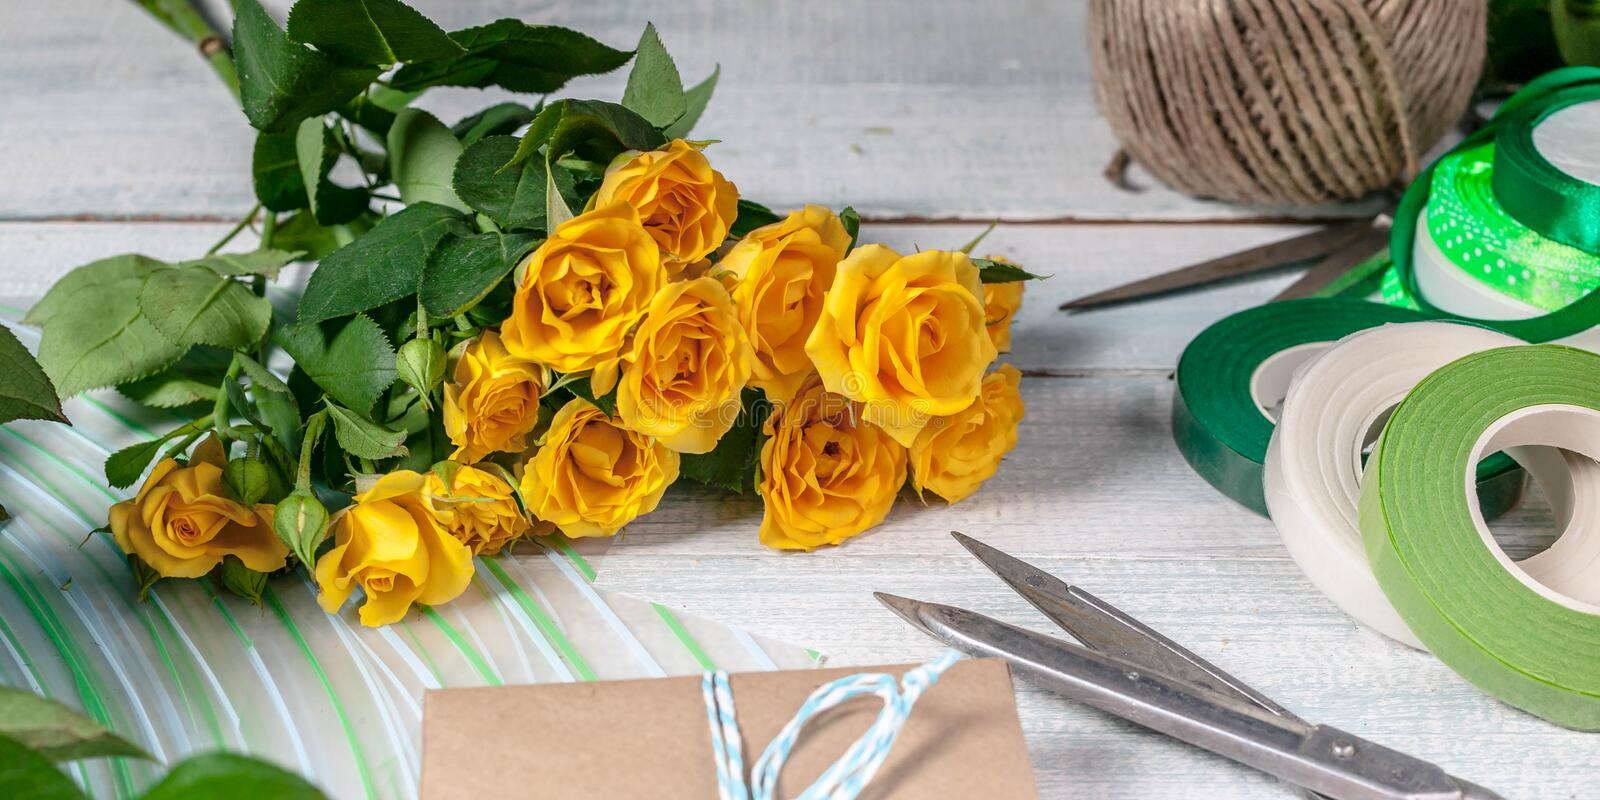 Banner. Workplace florist. Elegant yellow rose, scissors, gift wrap and other accessories on the horizontal wooden background stock photography